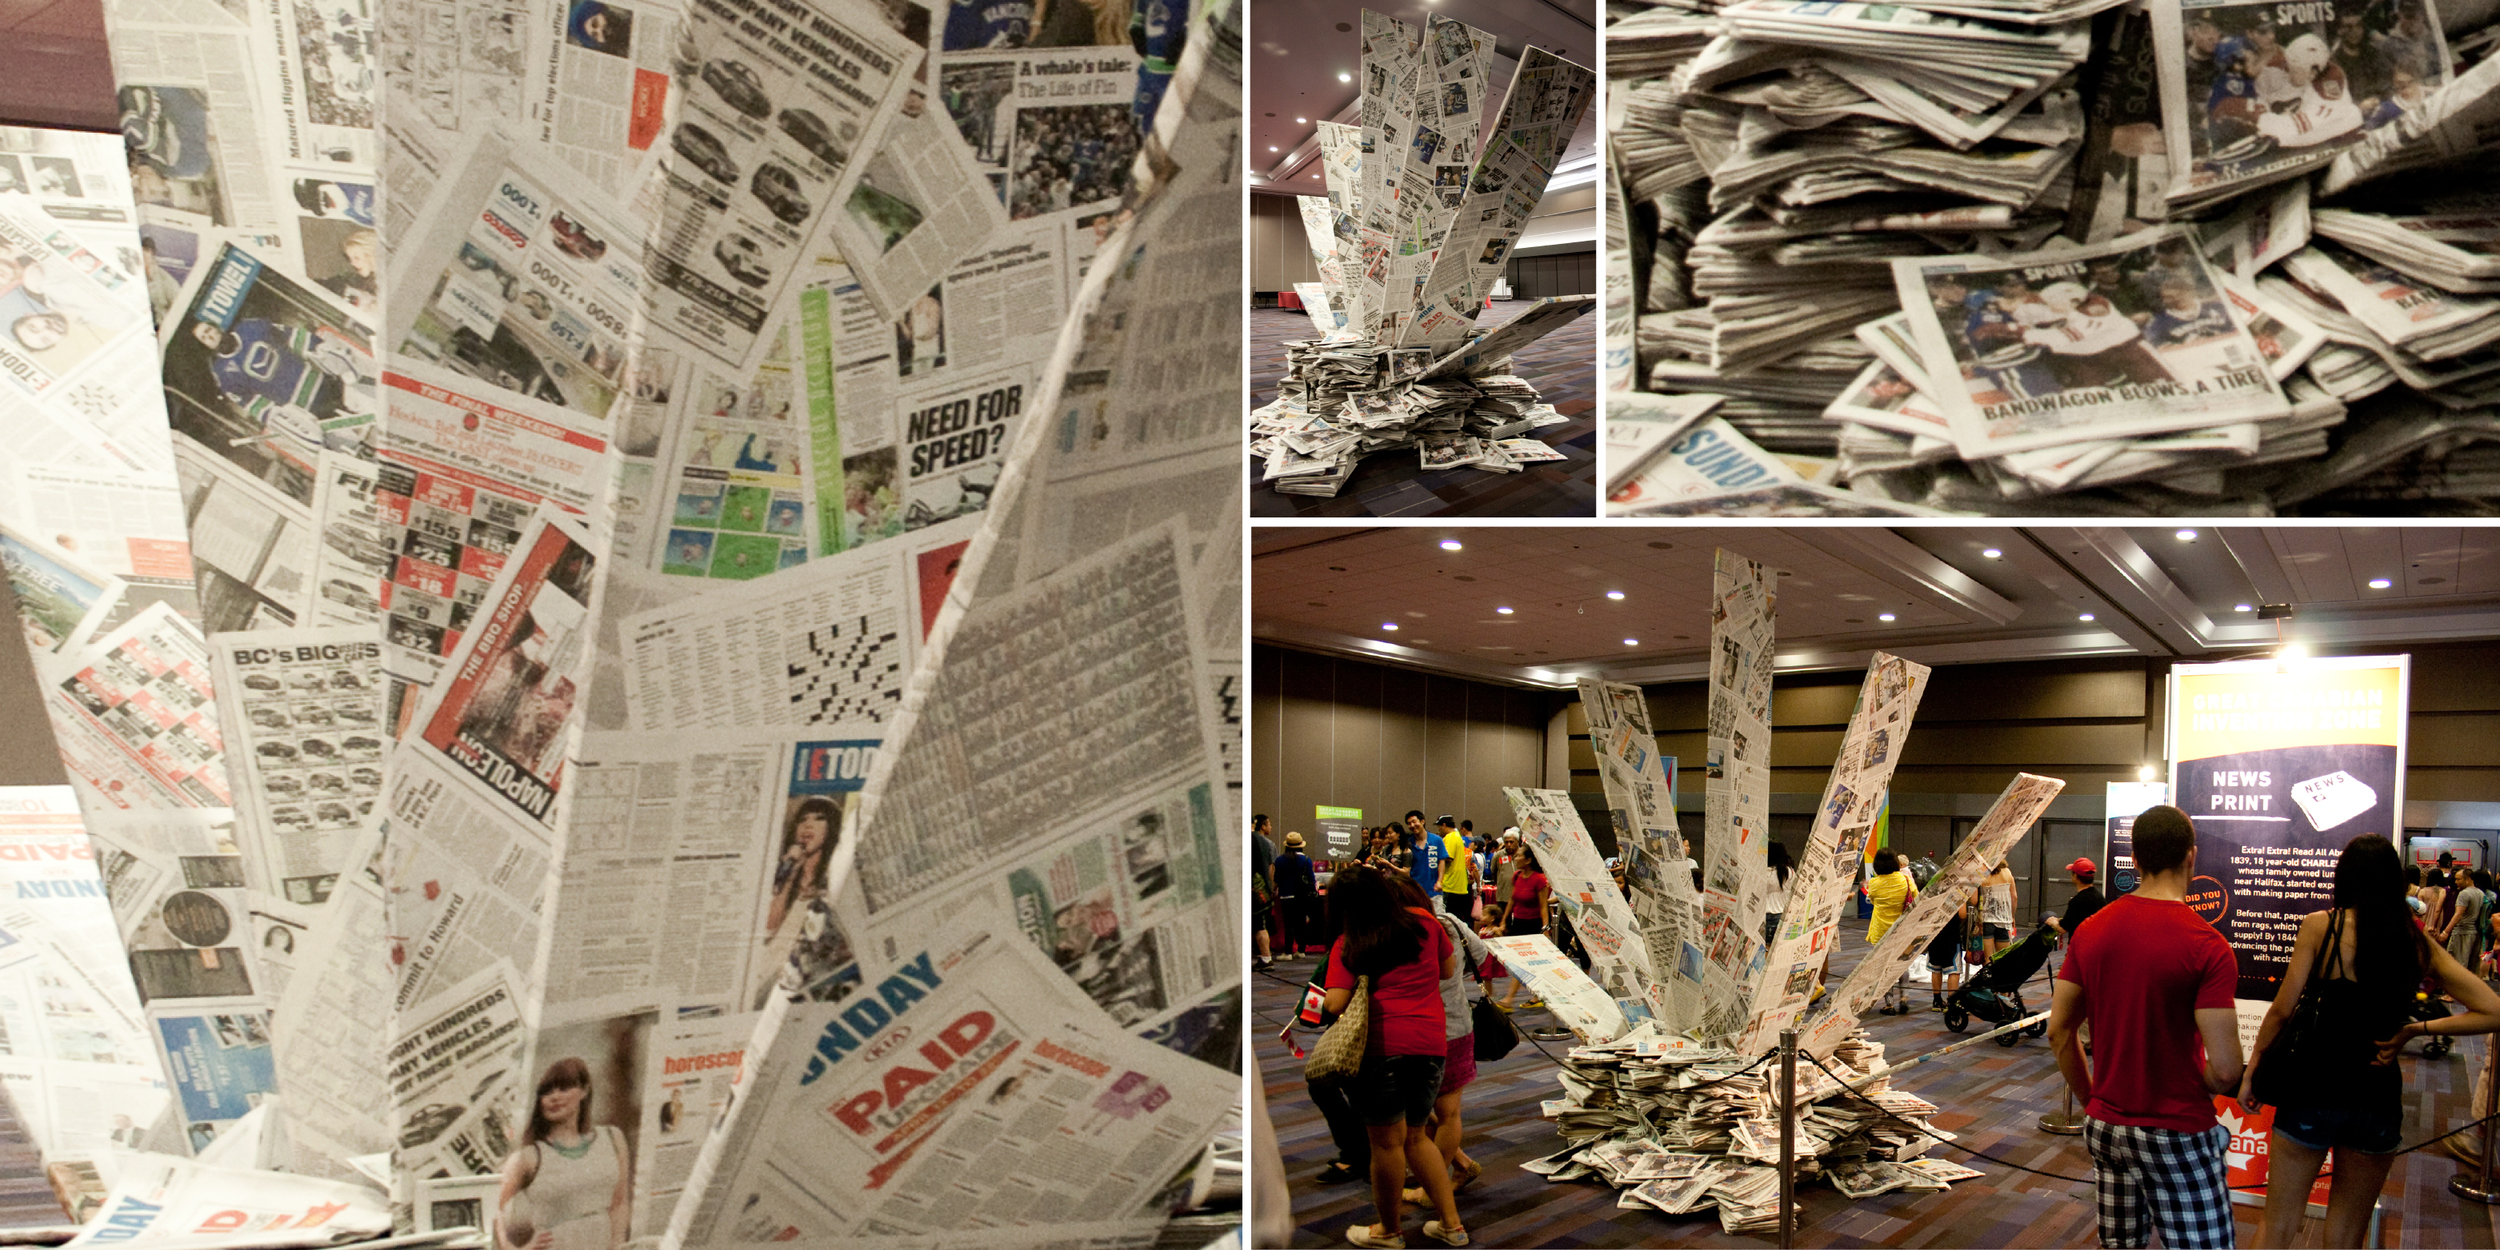 Newsprint exhibit – Finished product